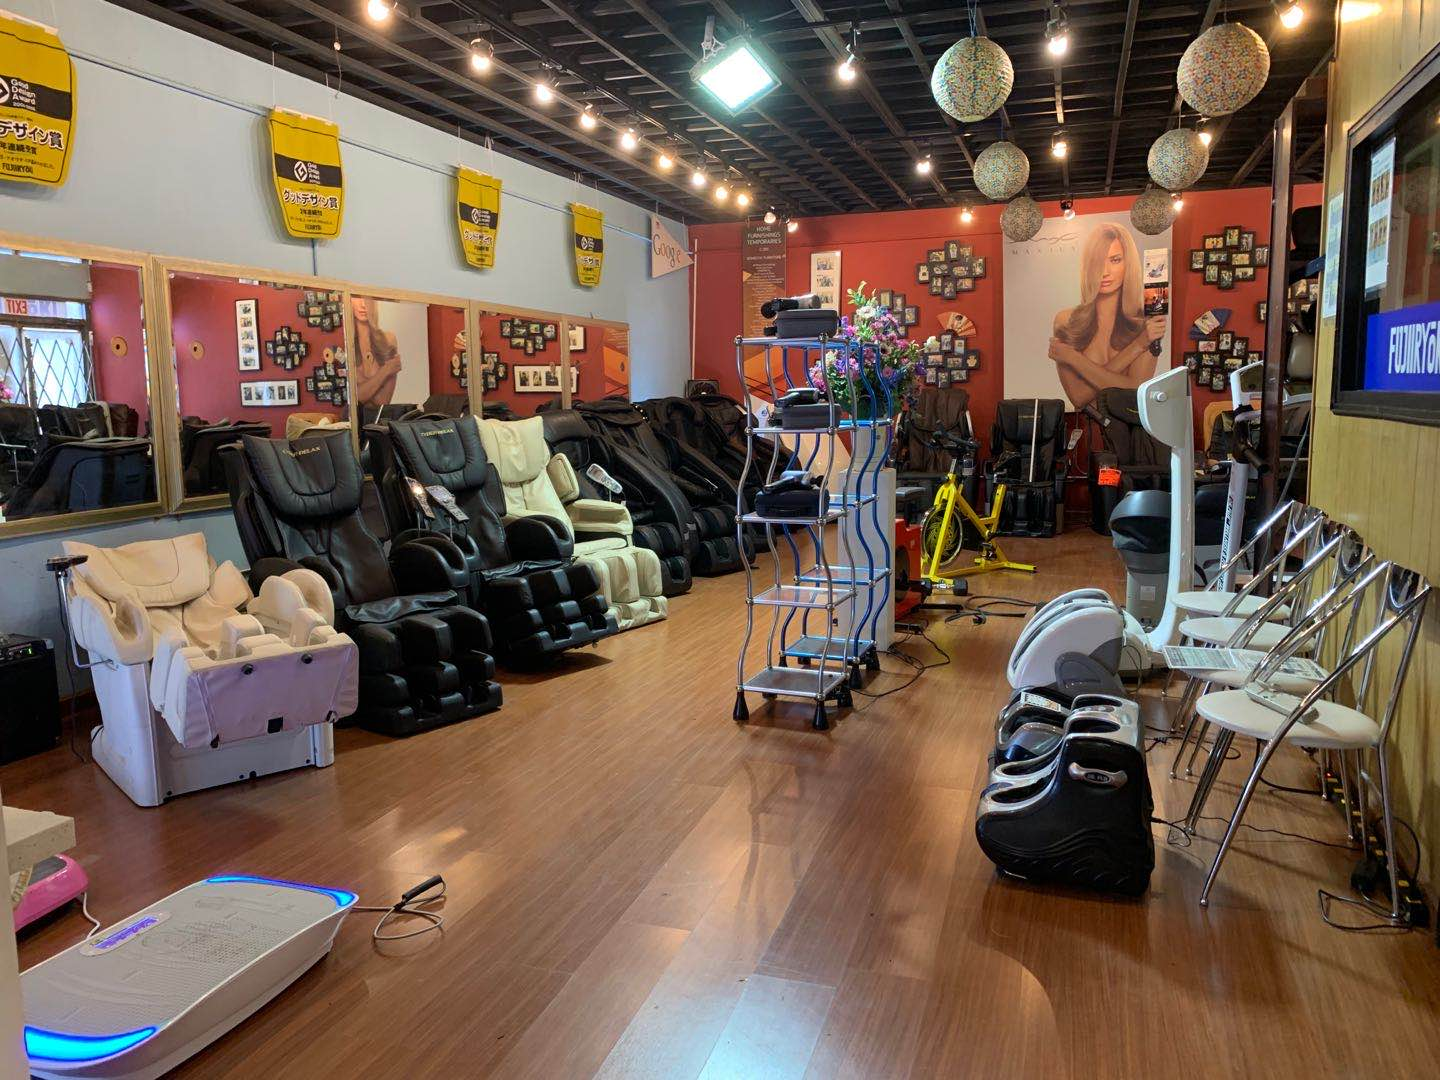 fuji-massage-chair-show-room-6